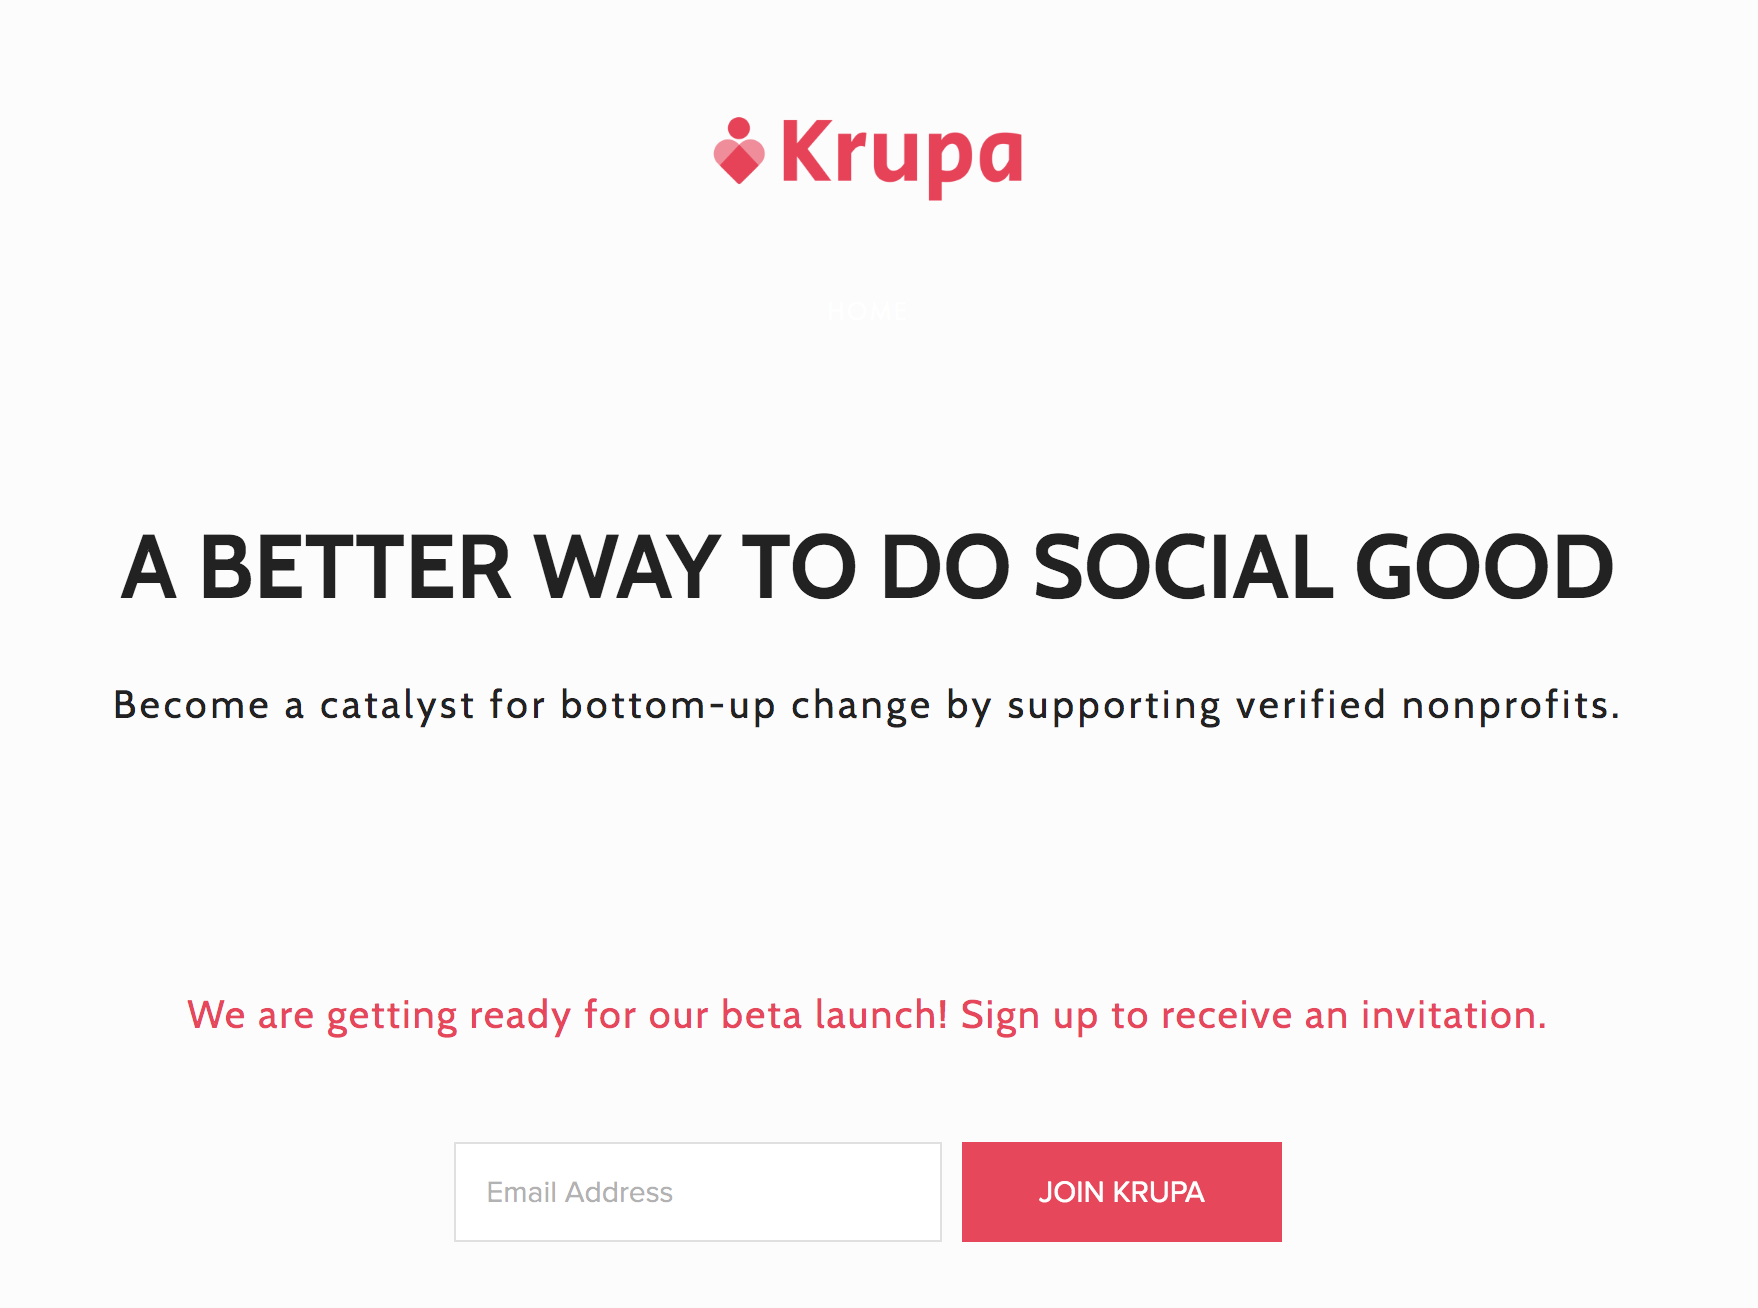 Launching Krupa - Krupa is set to launch by Fall of 2019. It is currently in its final testing stages, and is gathering it's set of beta testers. To provide initial feedback on the platform before it's public, sign up at www.krupa.global today!